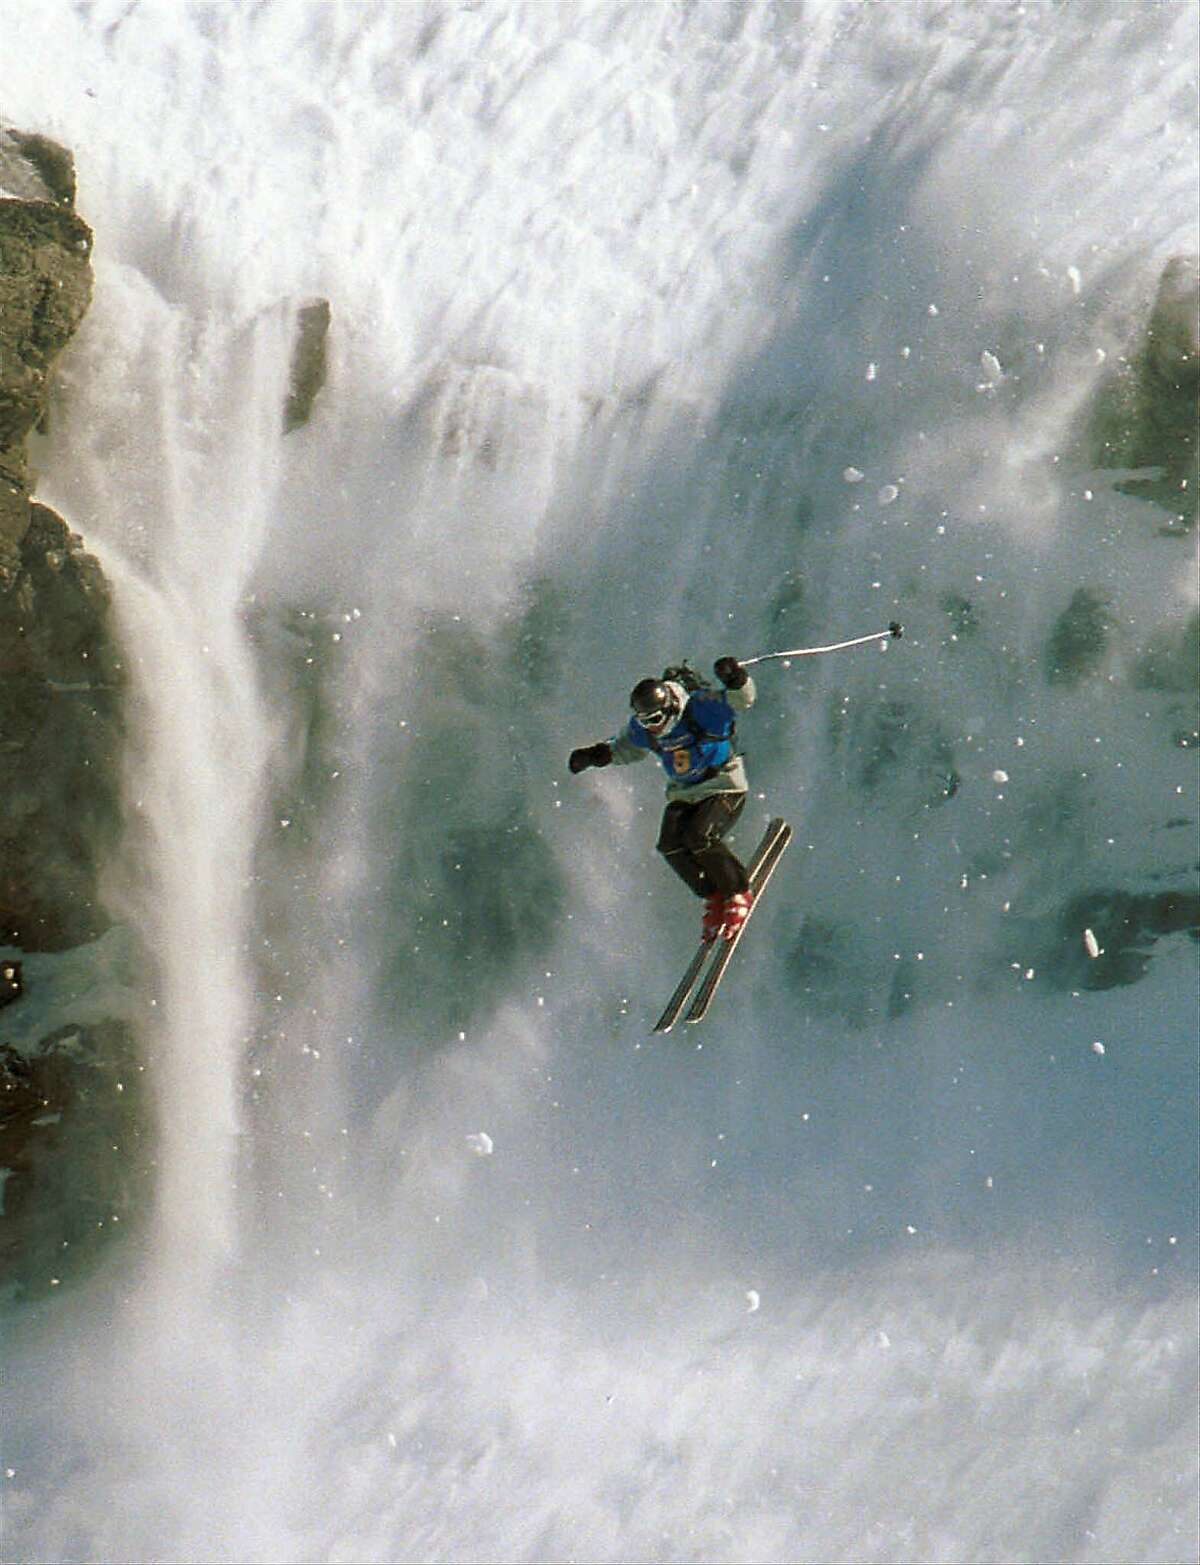 File photo of Rip Curl World Heli Challenge on Aug. 3, 2000. Rip Curl, a popular surf wear company, admitted that their winter 2015 Mountain-wear collection was made in Taedonggang Clothing Factory in North Korea, known for its poor working conditions.